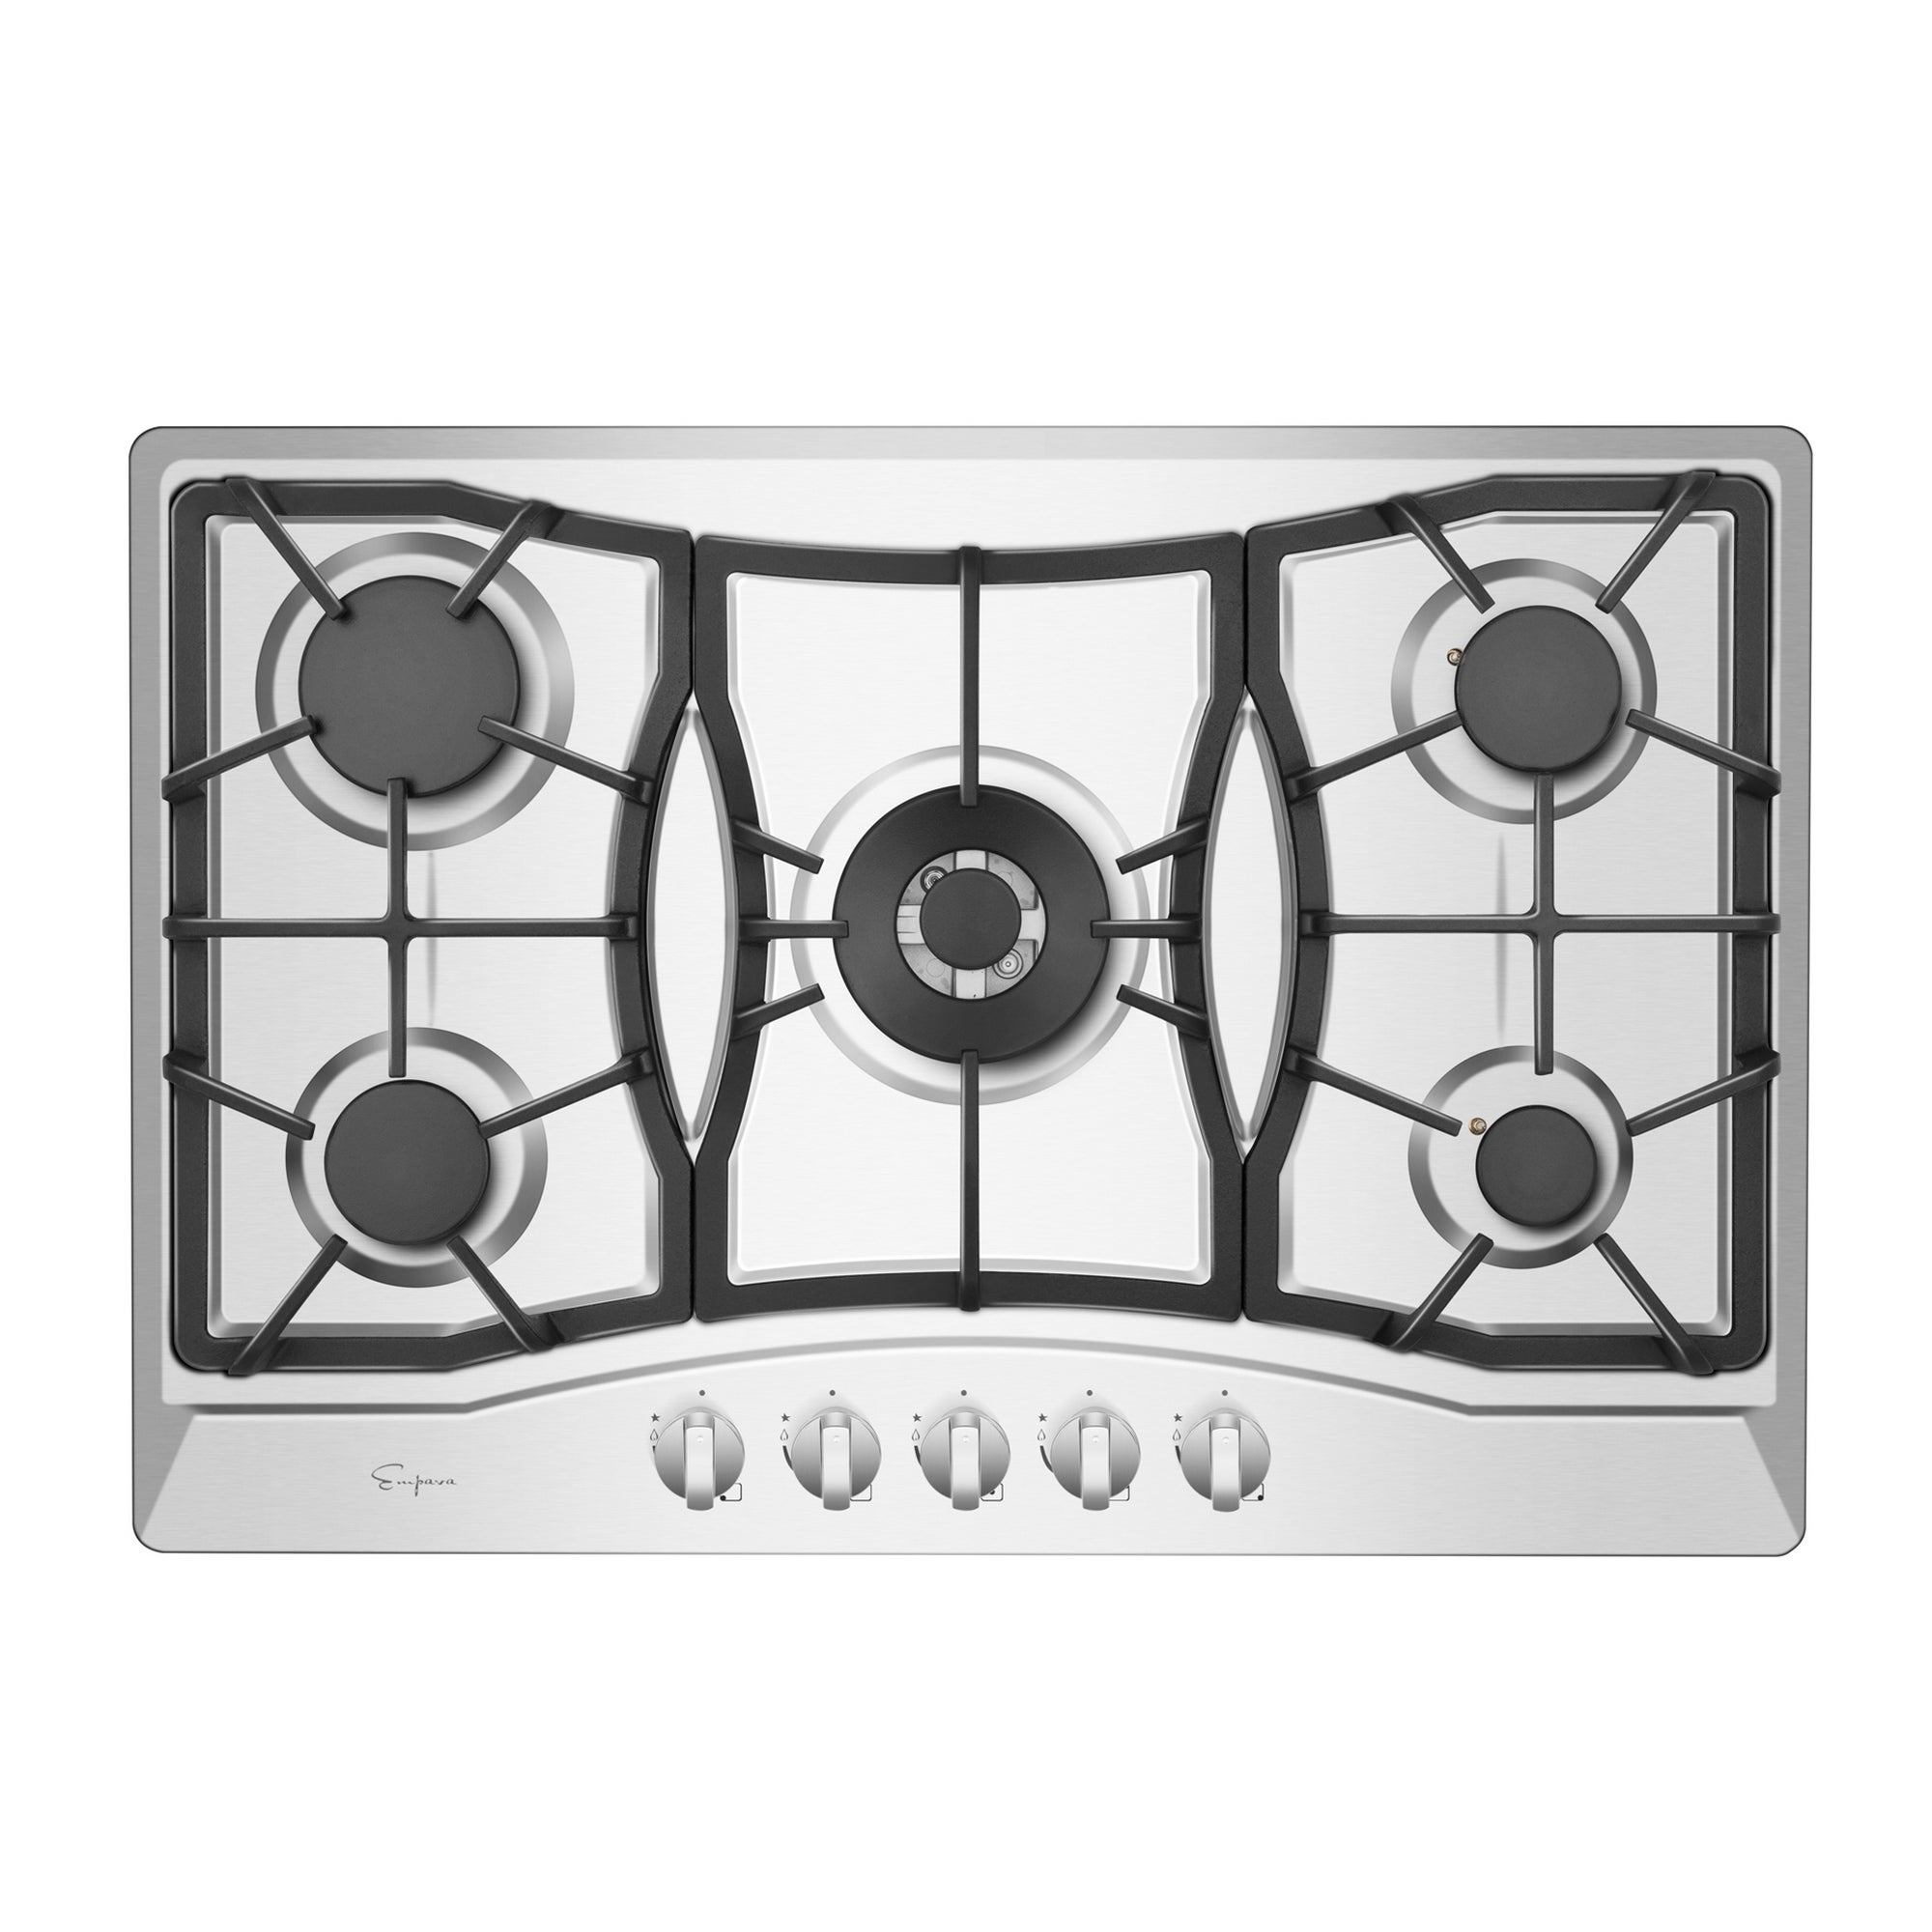 Shop Empava 30 Built In Gas Stove Top Stainless Steel 5 Italy Sabaf Burners Lpg Natural Gas Cooktop Overstock 22469060